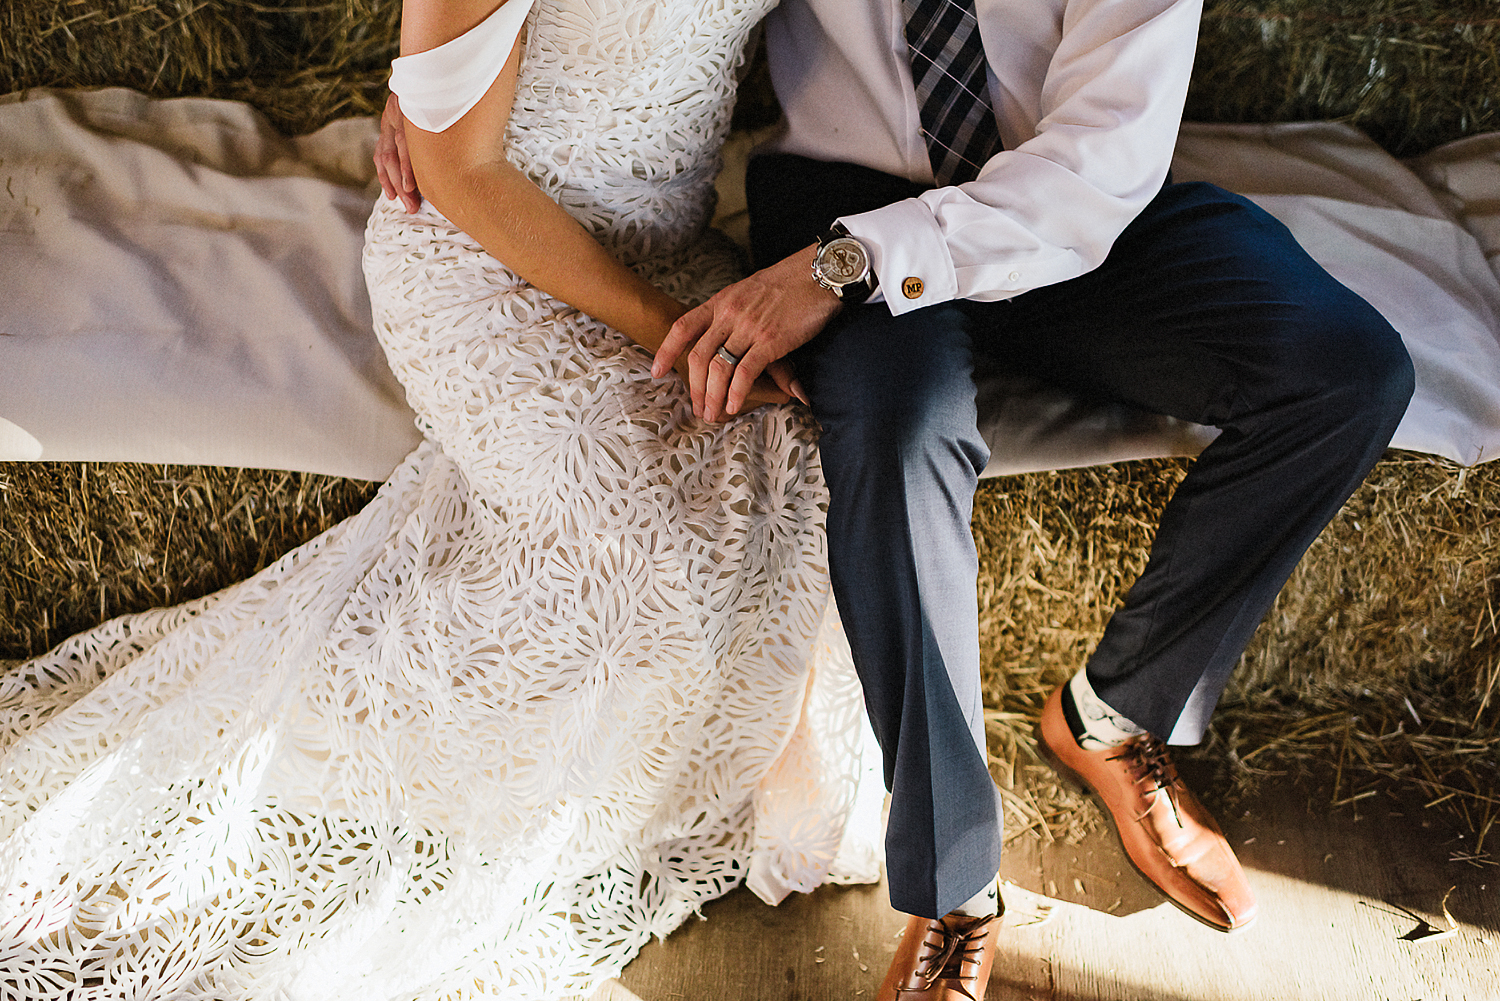 Best-Wedding-Photographers-Toronto-with-Documentary-and-photojournalistic-style-3b-Photography-Intimate-Wedding-at-Dowswell-Barn-Wedding-Photography-Bride-and-groom-intimate-wedding-portraits-intimate-details.jpg